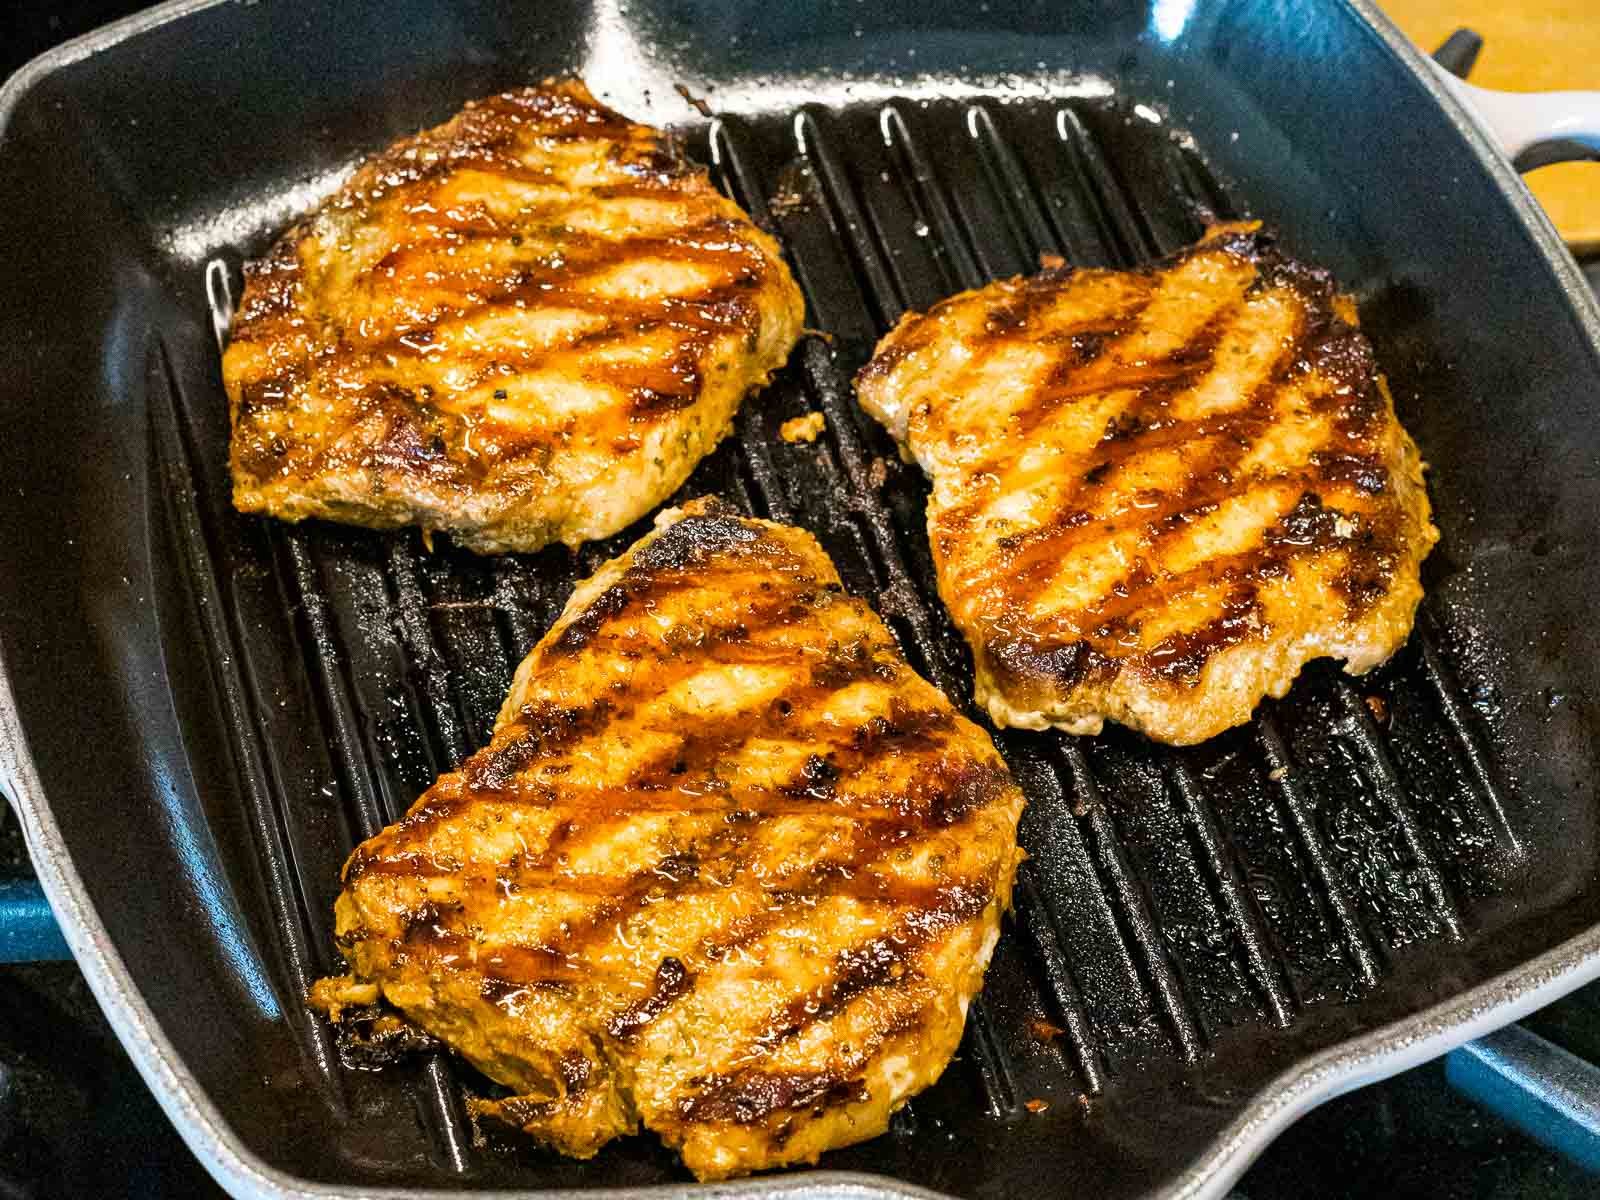 easy grilled pork chops with grill marks in a pan